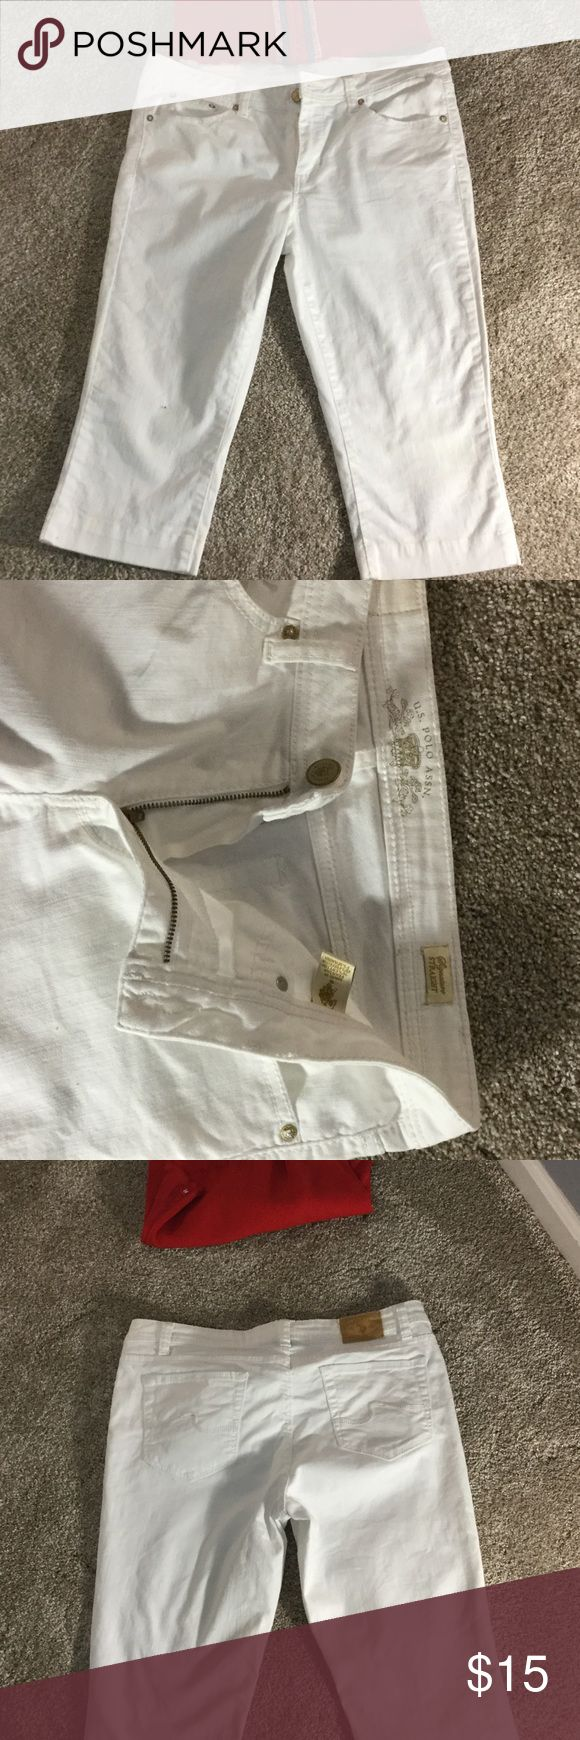 Size 8 US Polo white capris Adorable Size 8 US polo capris.  Can wear long or cuff them. Worn cuffed 14 inches long and un cuffed 17 inches long.  Mid rise so very flattering. US Polo Pants Capris